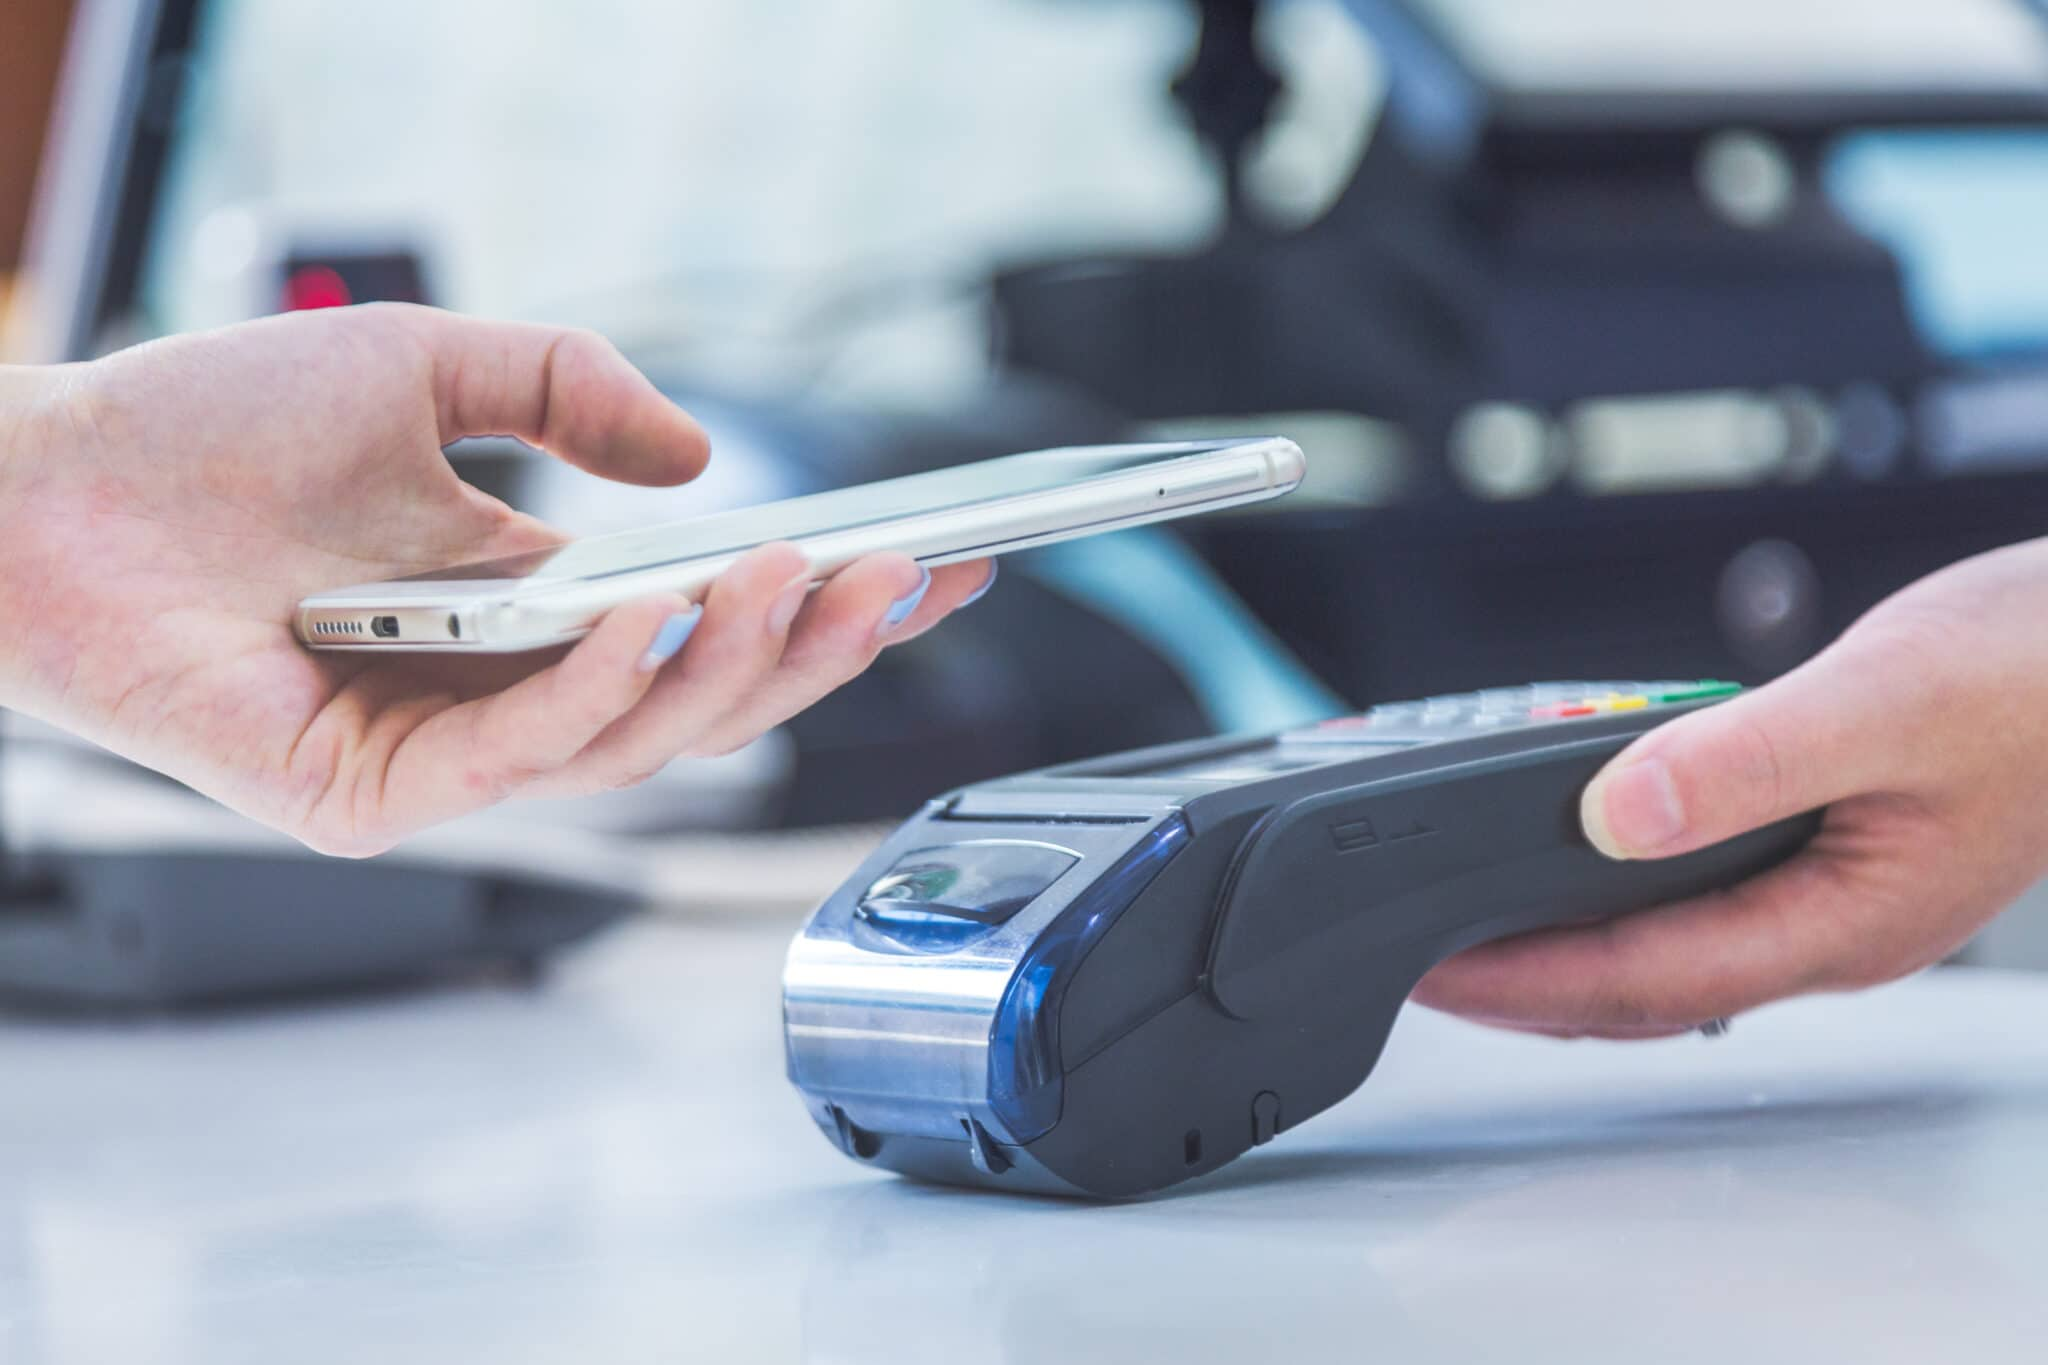 Payment with mobile phone image